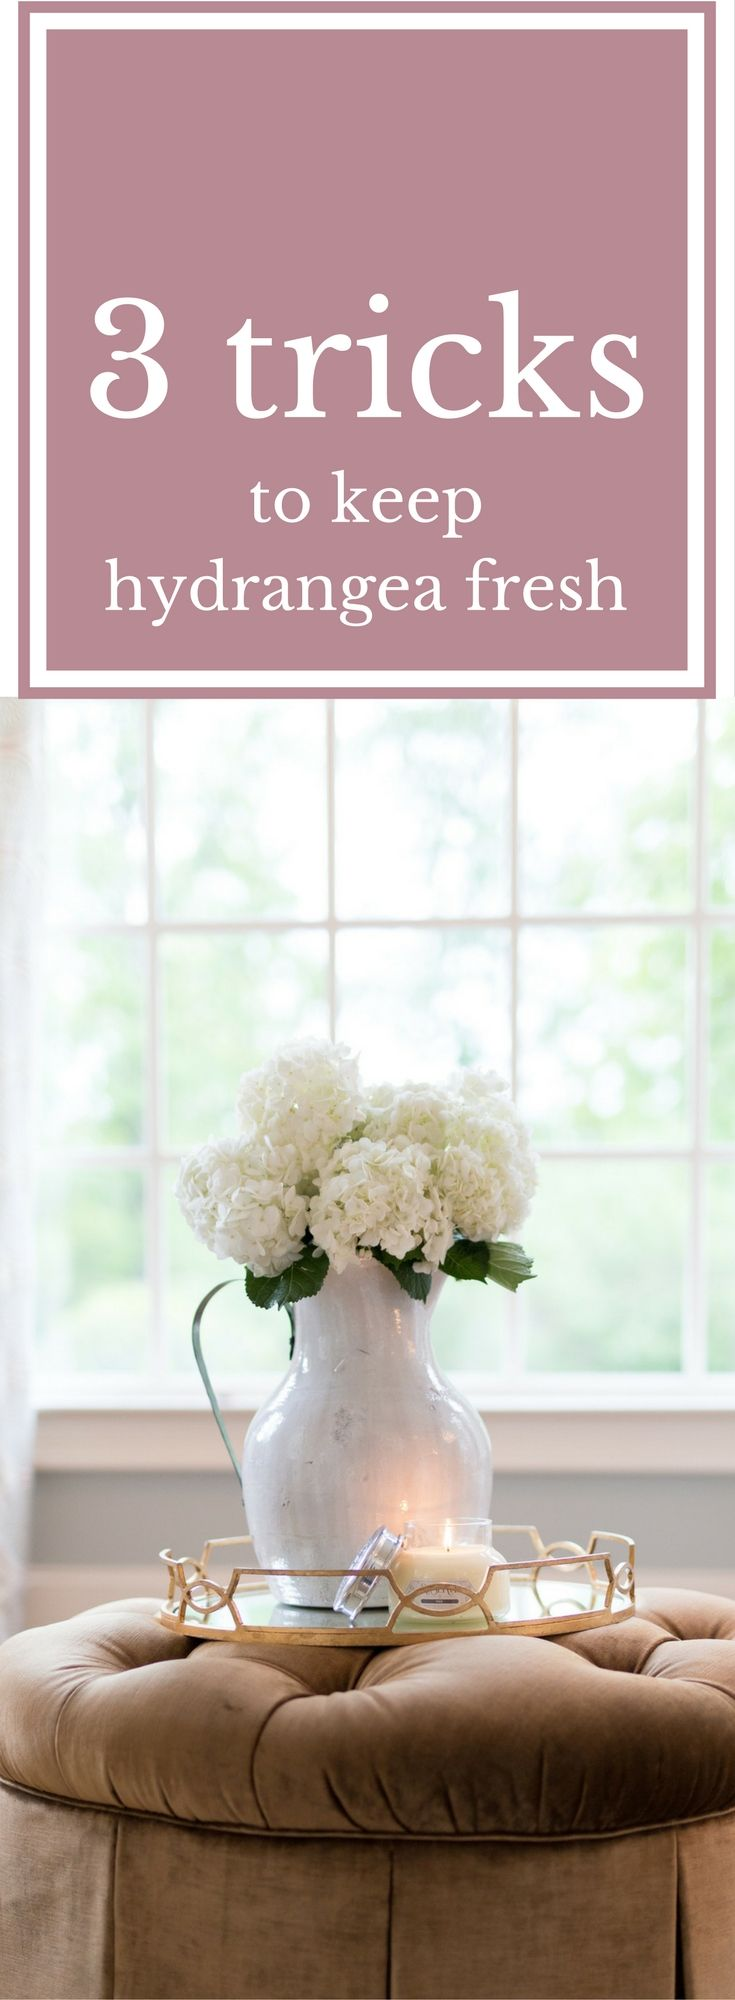 These three tricks will keep your hydrangea fresh and lasting longer! If you love cut hydrangea, use these easy steps to both revive wilting hydrangea and keep your flower arrangements lasting longer. You'll be shocked at how easy they are and how well they work to make beautiful flower arrangements look great longer and bring wilted hydrangea back to life!